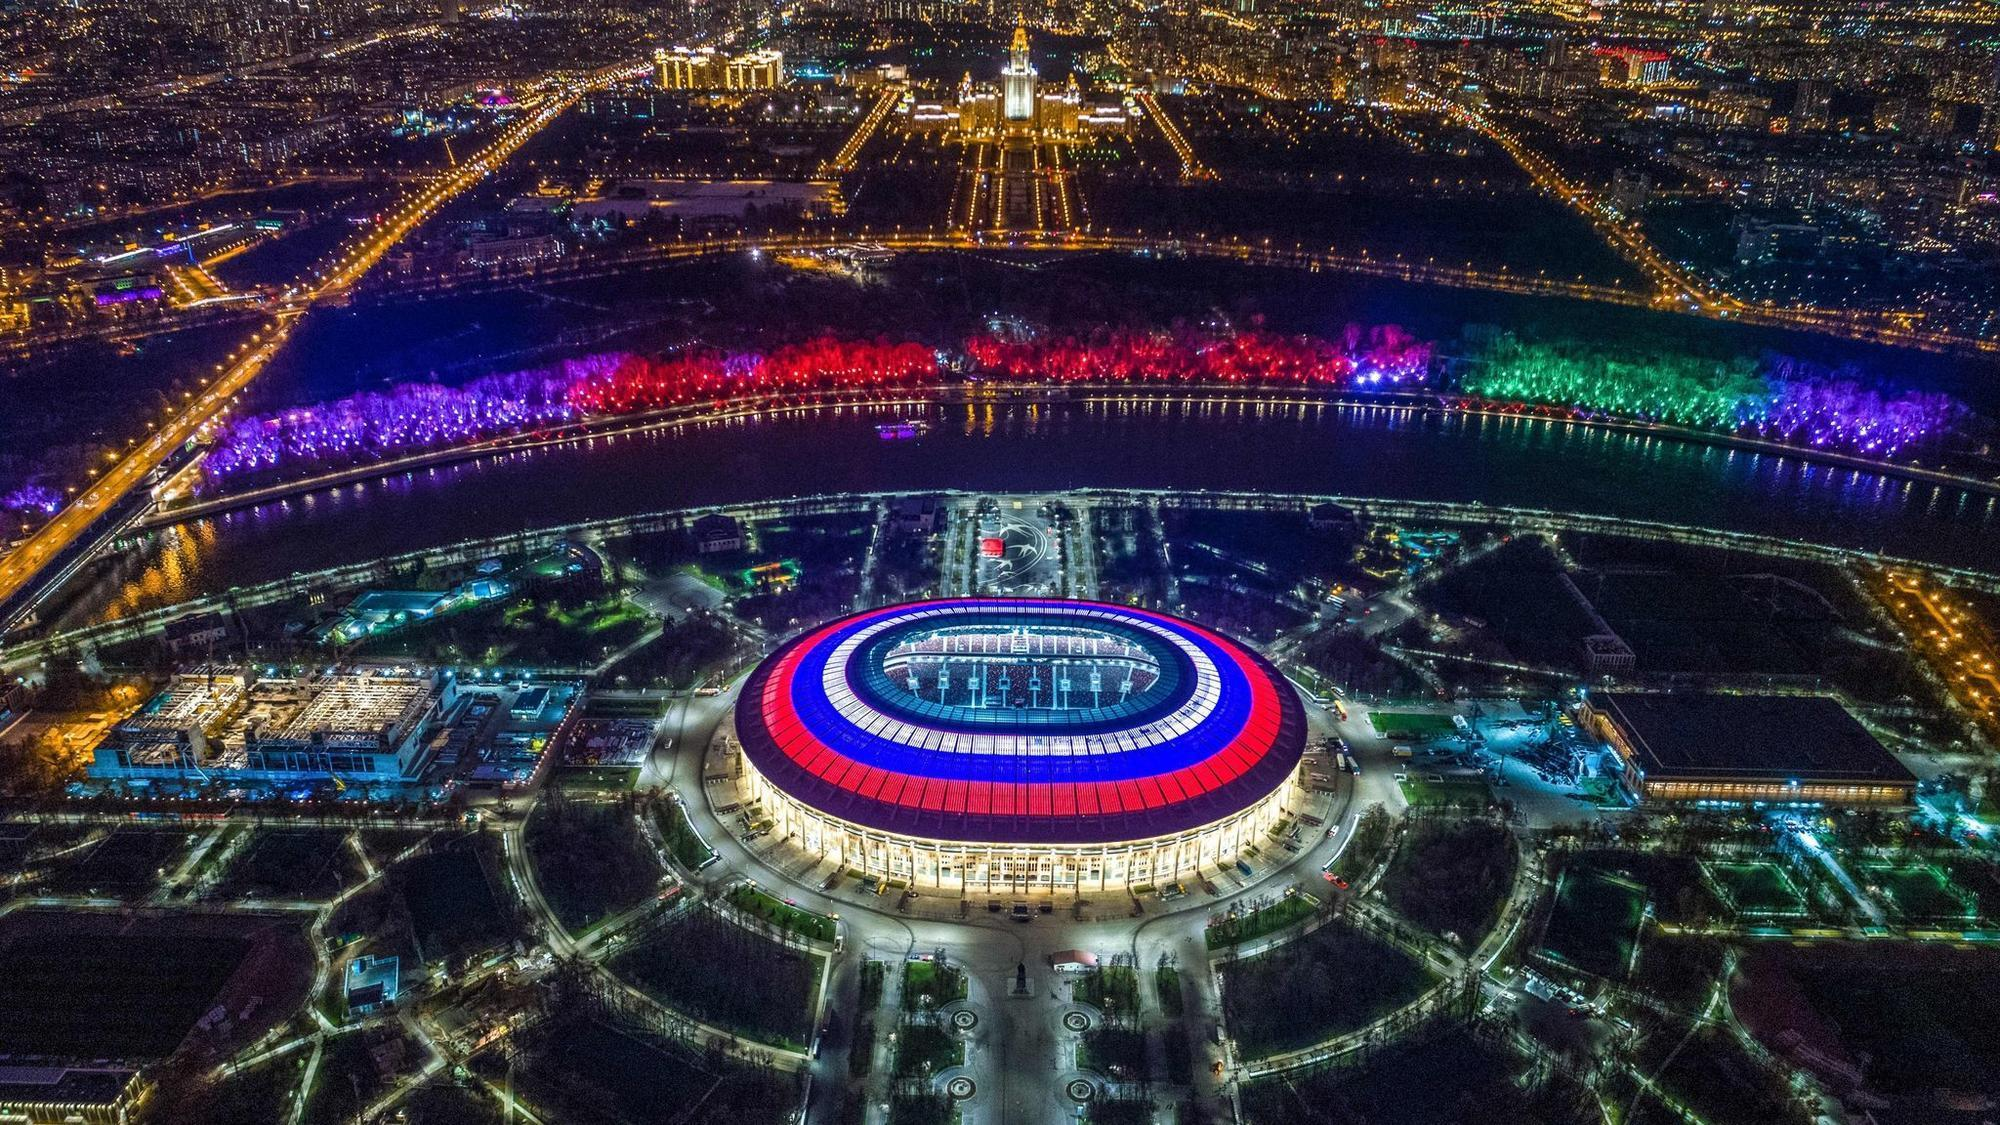 From Moscow to Yekaterinburg: the 2018 World Cup venues - Chicago Tribune